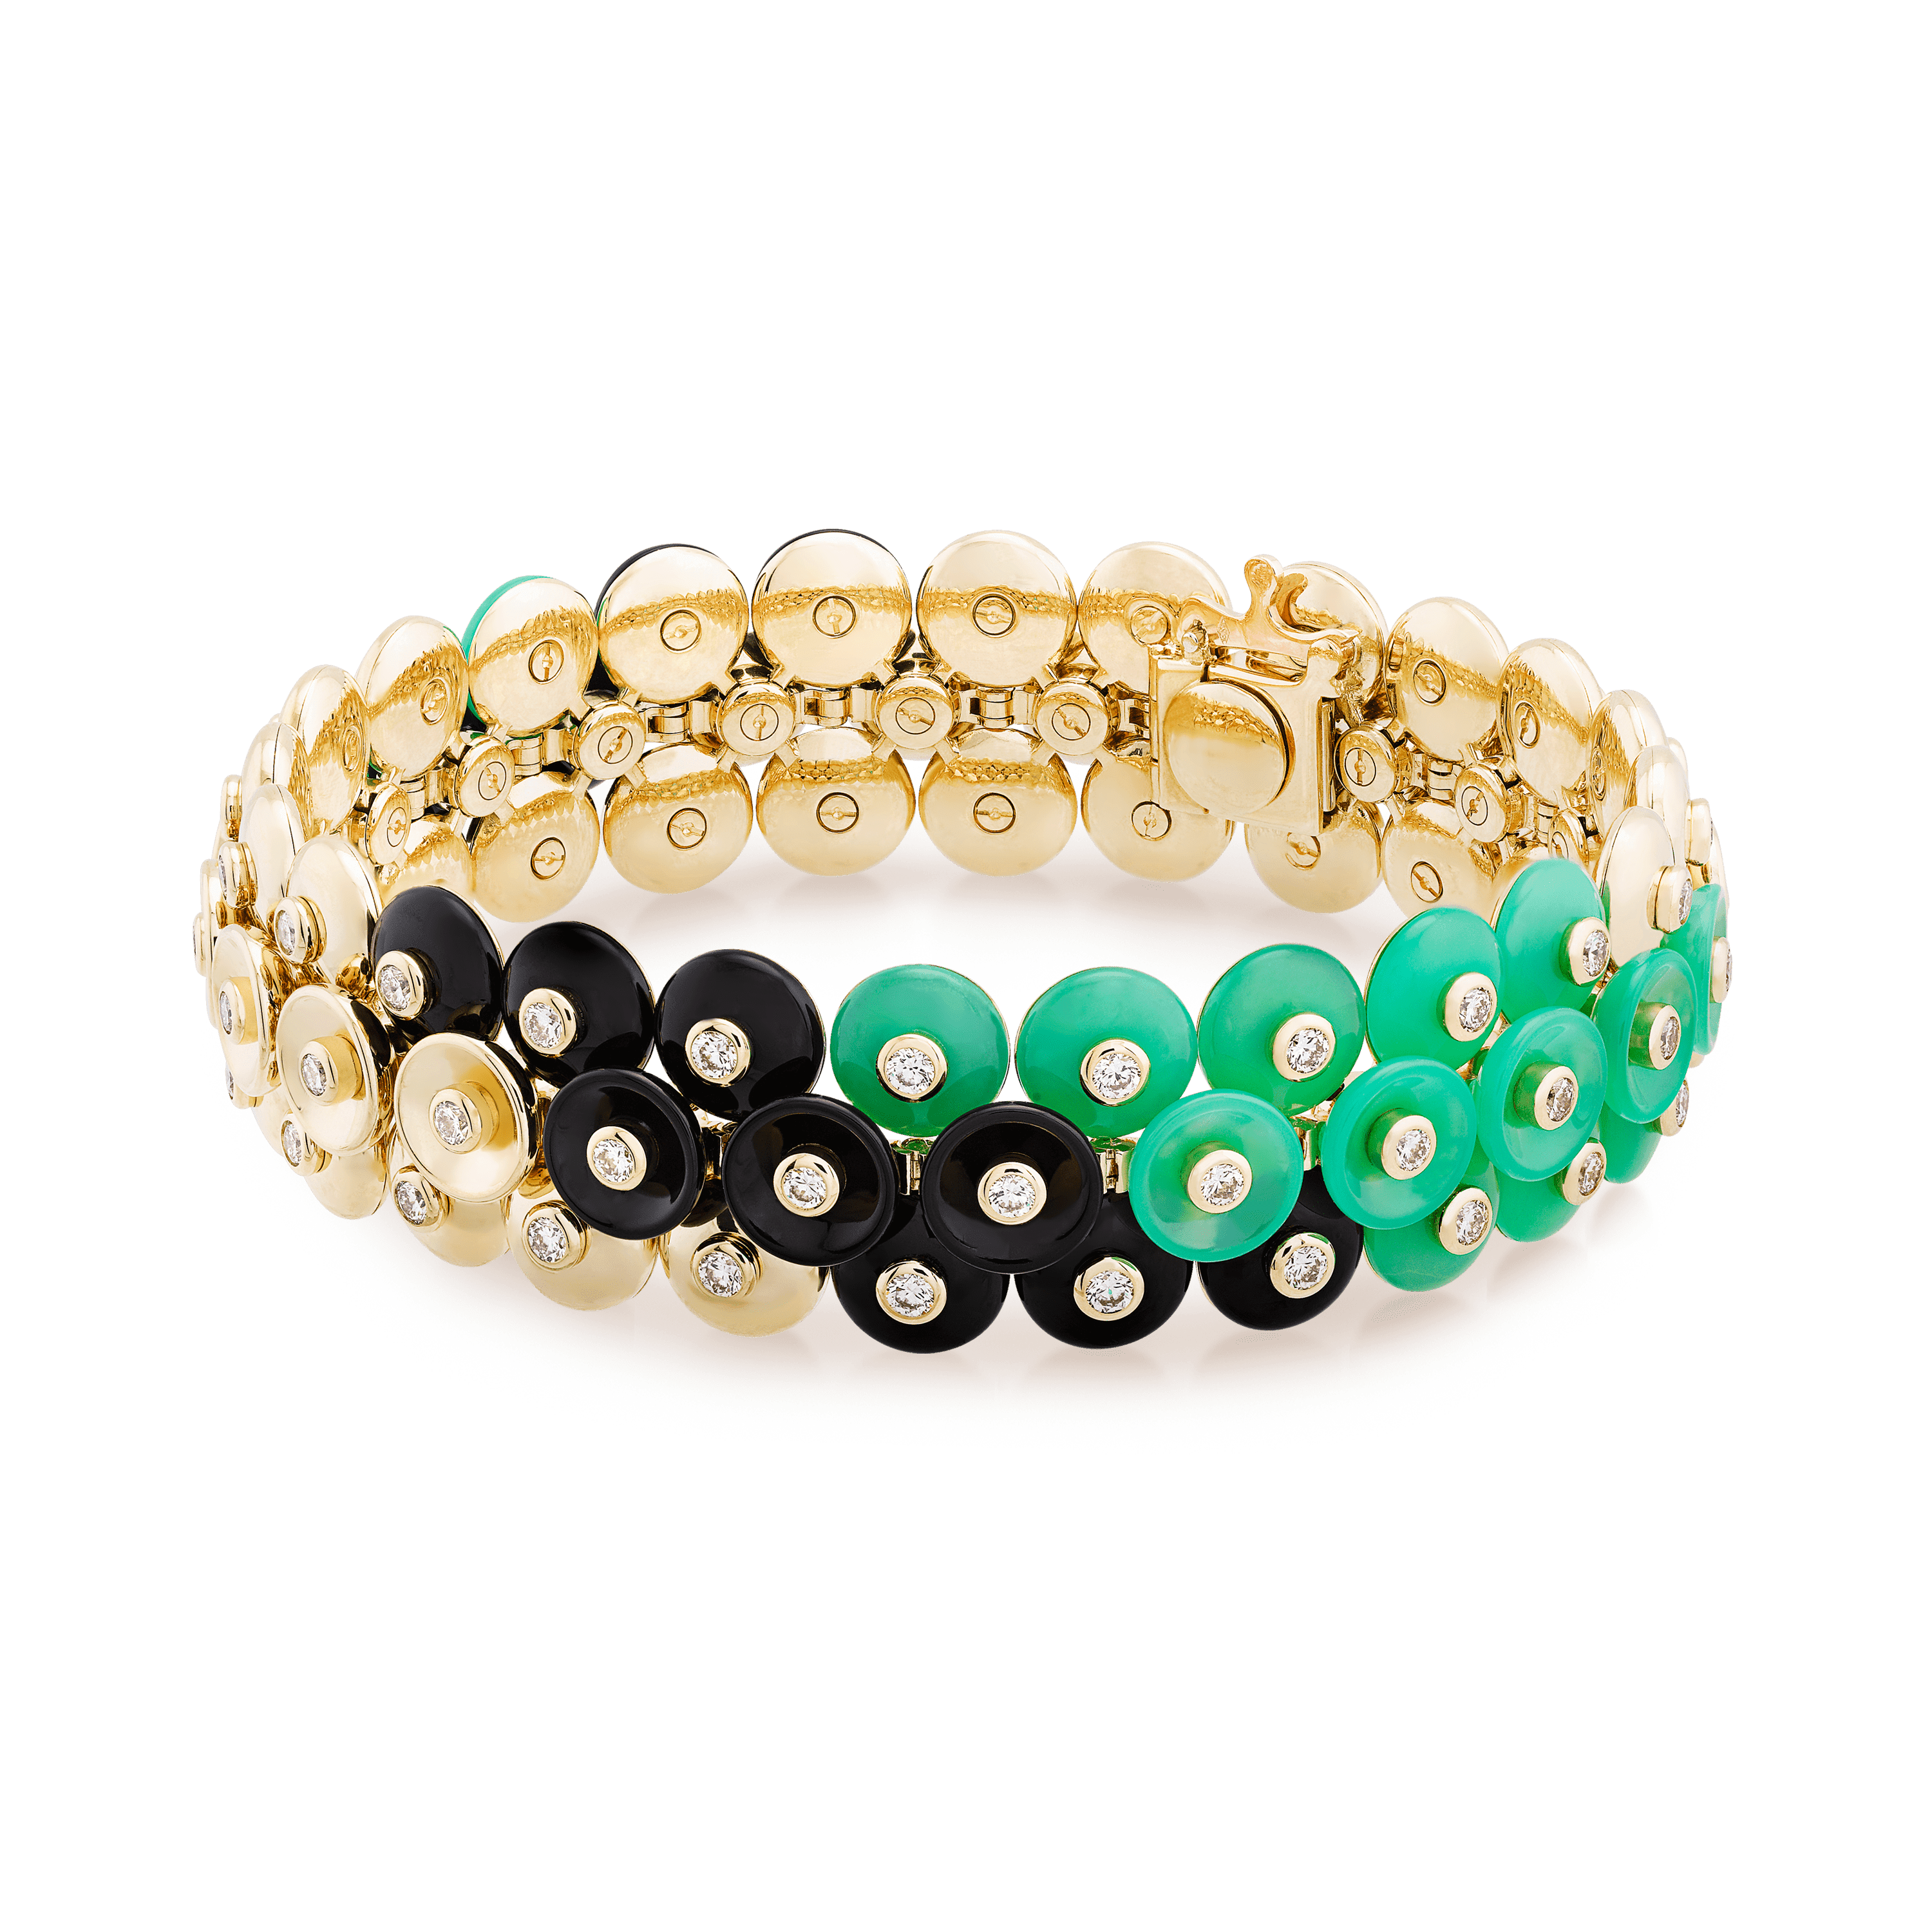 Bouton d'or bracelet, medium model, - Front View - VCARO6W300 - Van Cleef & Arpels